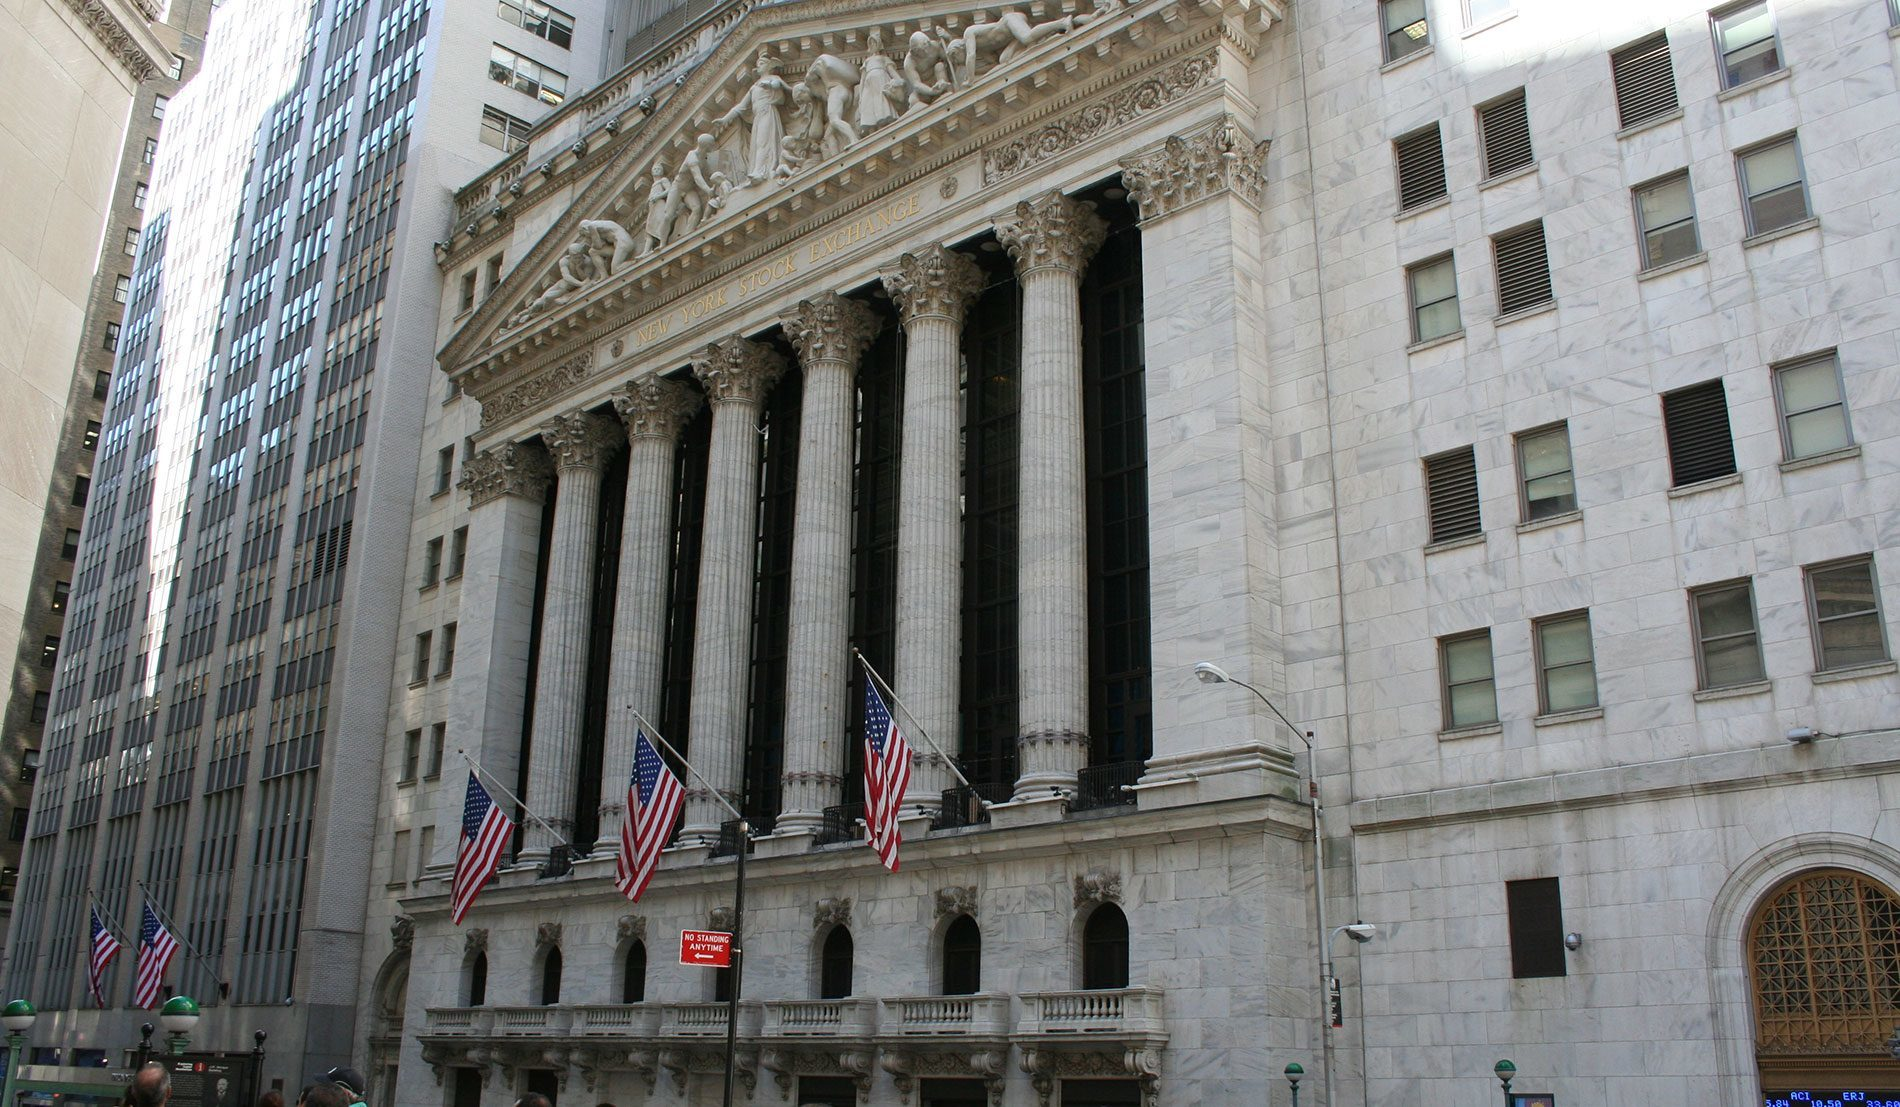 Visiter Wall Street la bourse de New York